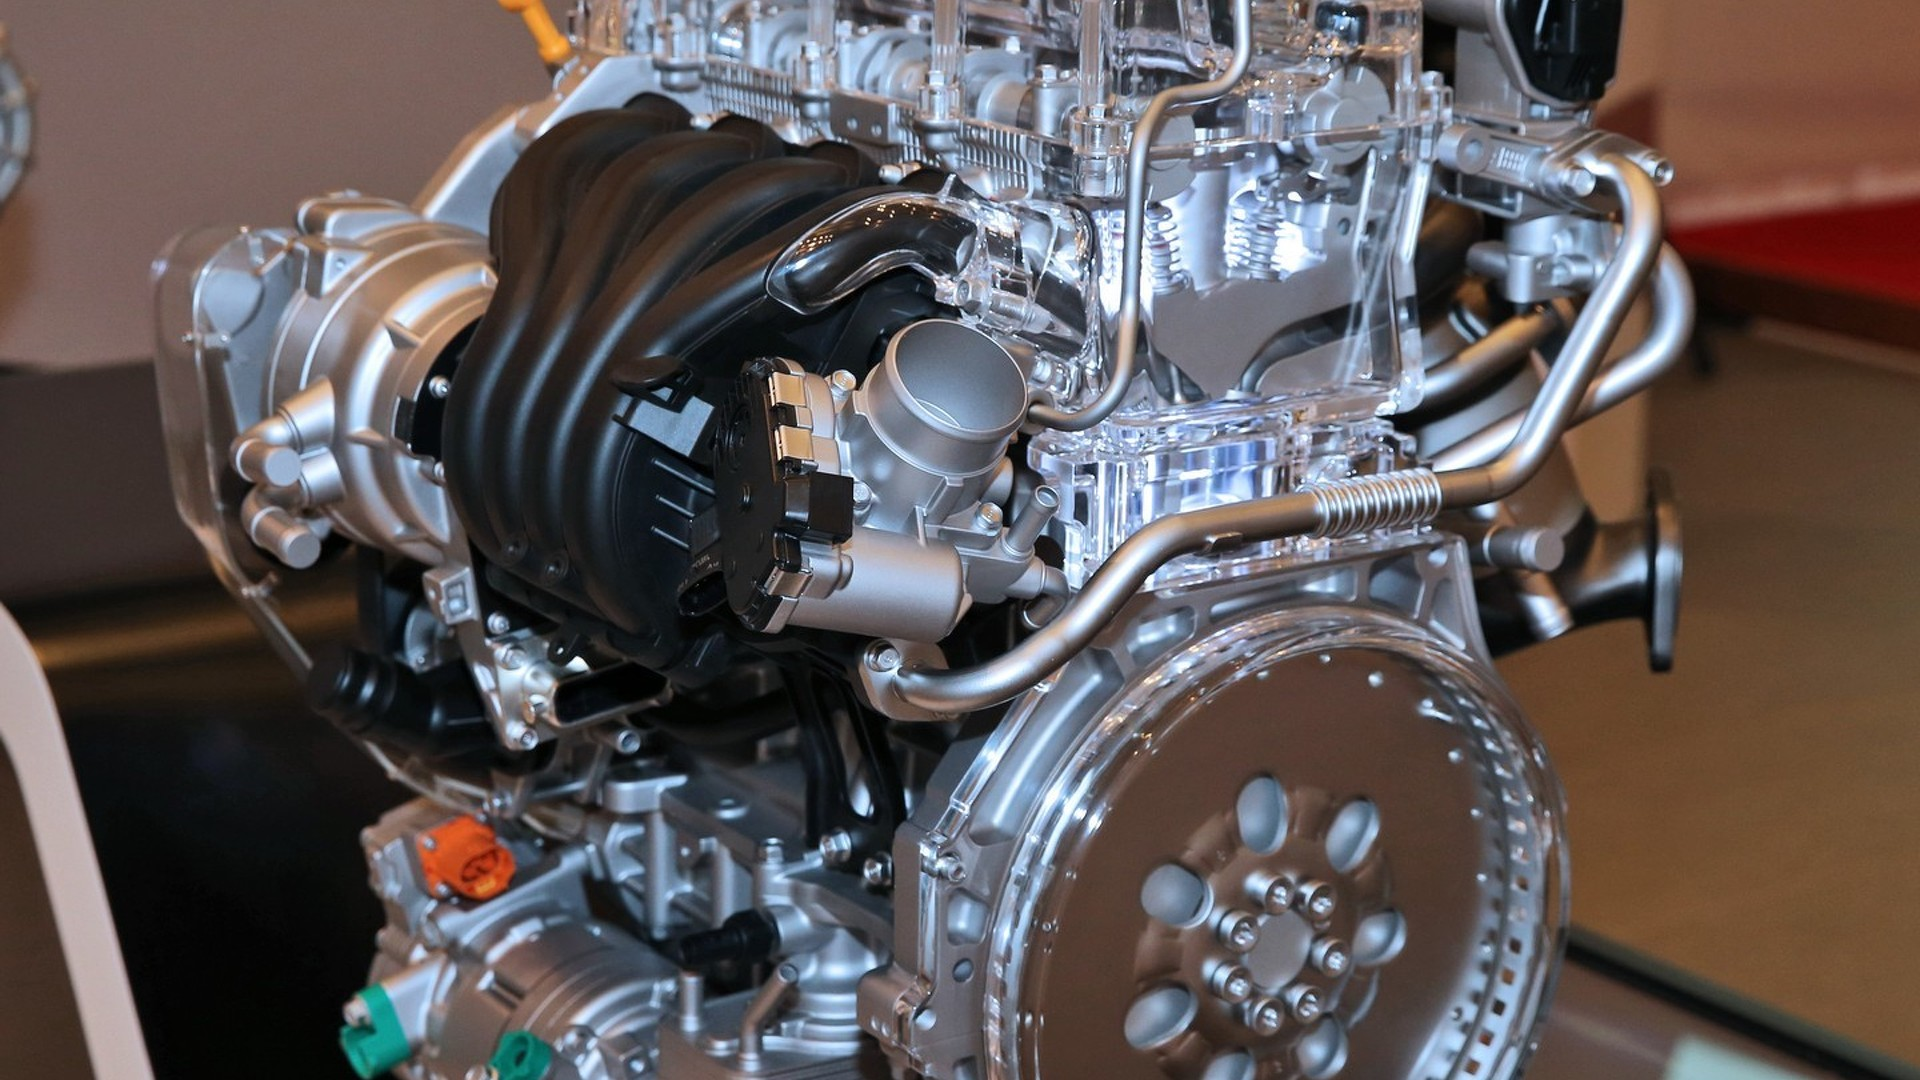 Hyundai Reveals Dedicated 1 6 Liter Gdi Engine For Its Prius Rival Along With New 8 Sd Auto Box